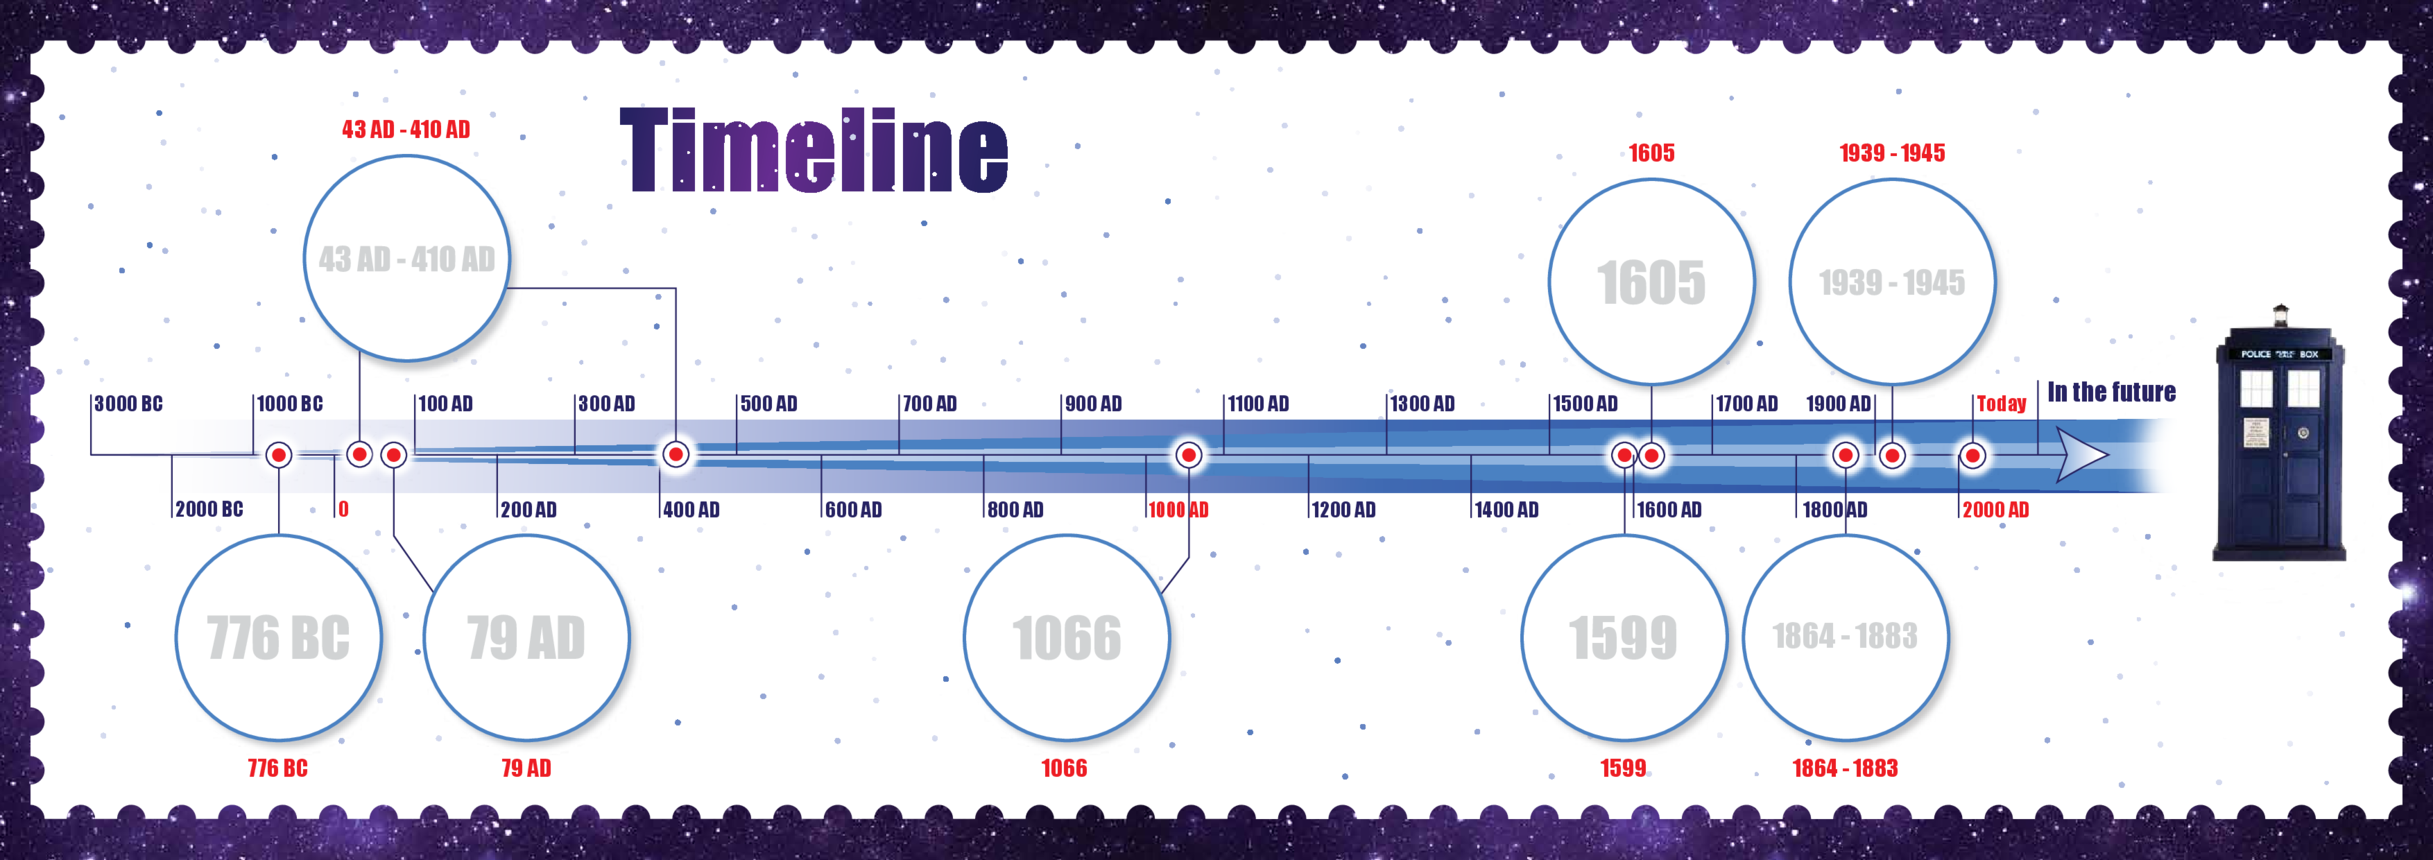 Primary 1) Time Travel Timeline A3